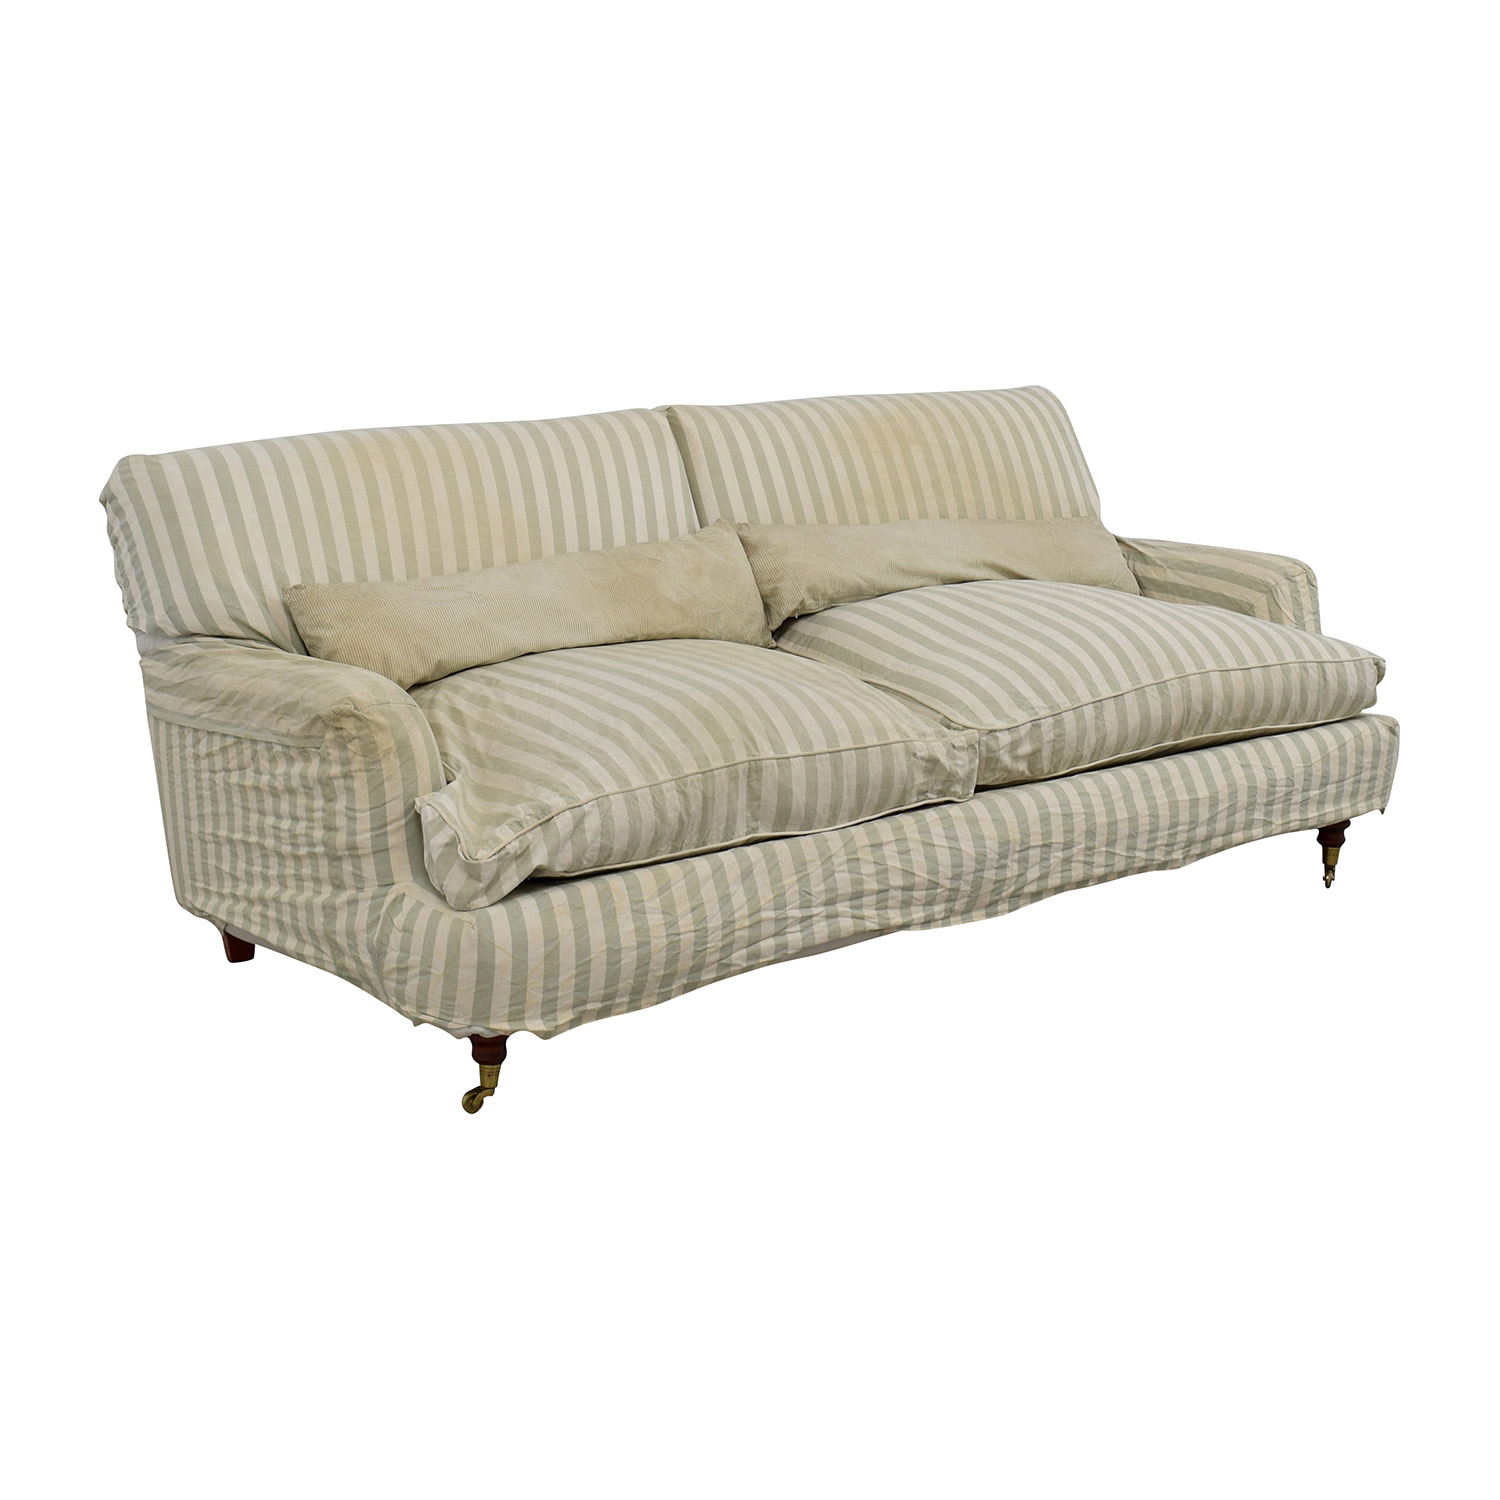 craigslist sofa bed singapore flexsteel westside conversation english roll arm canada